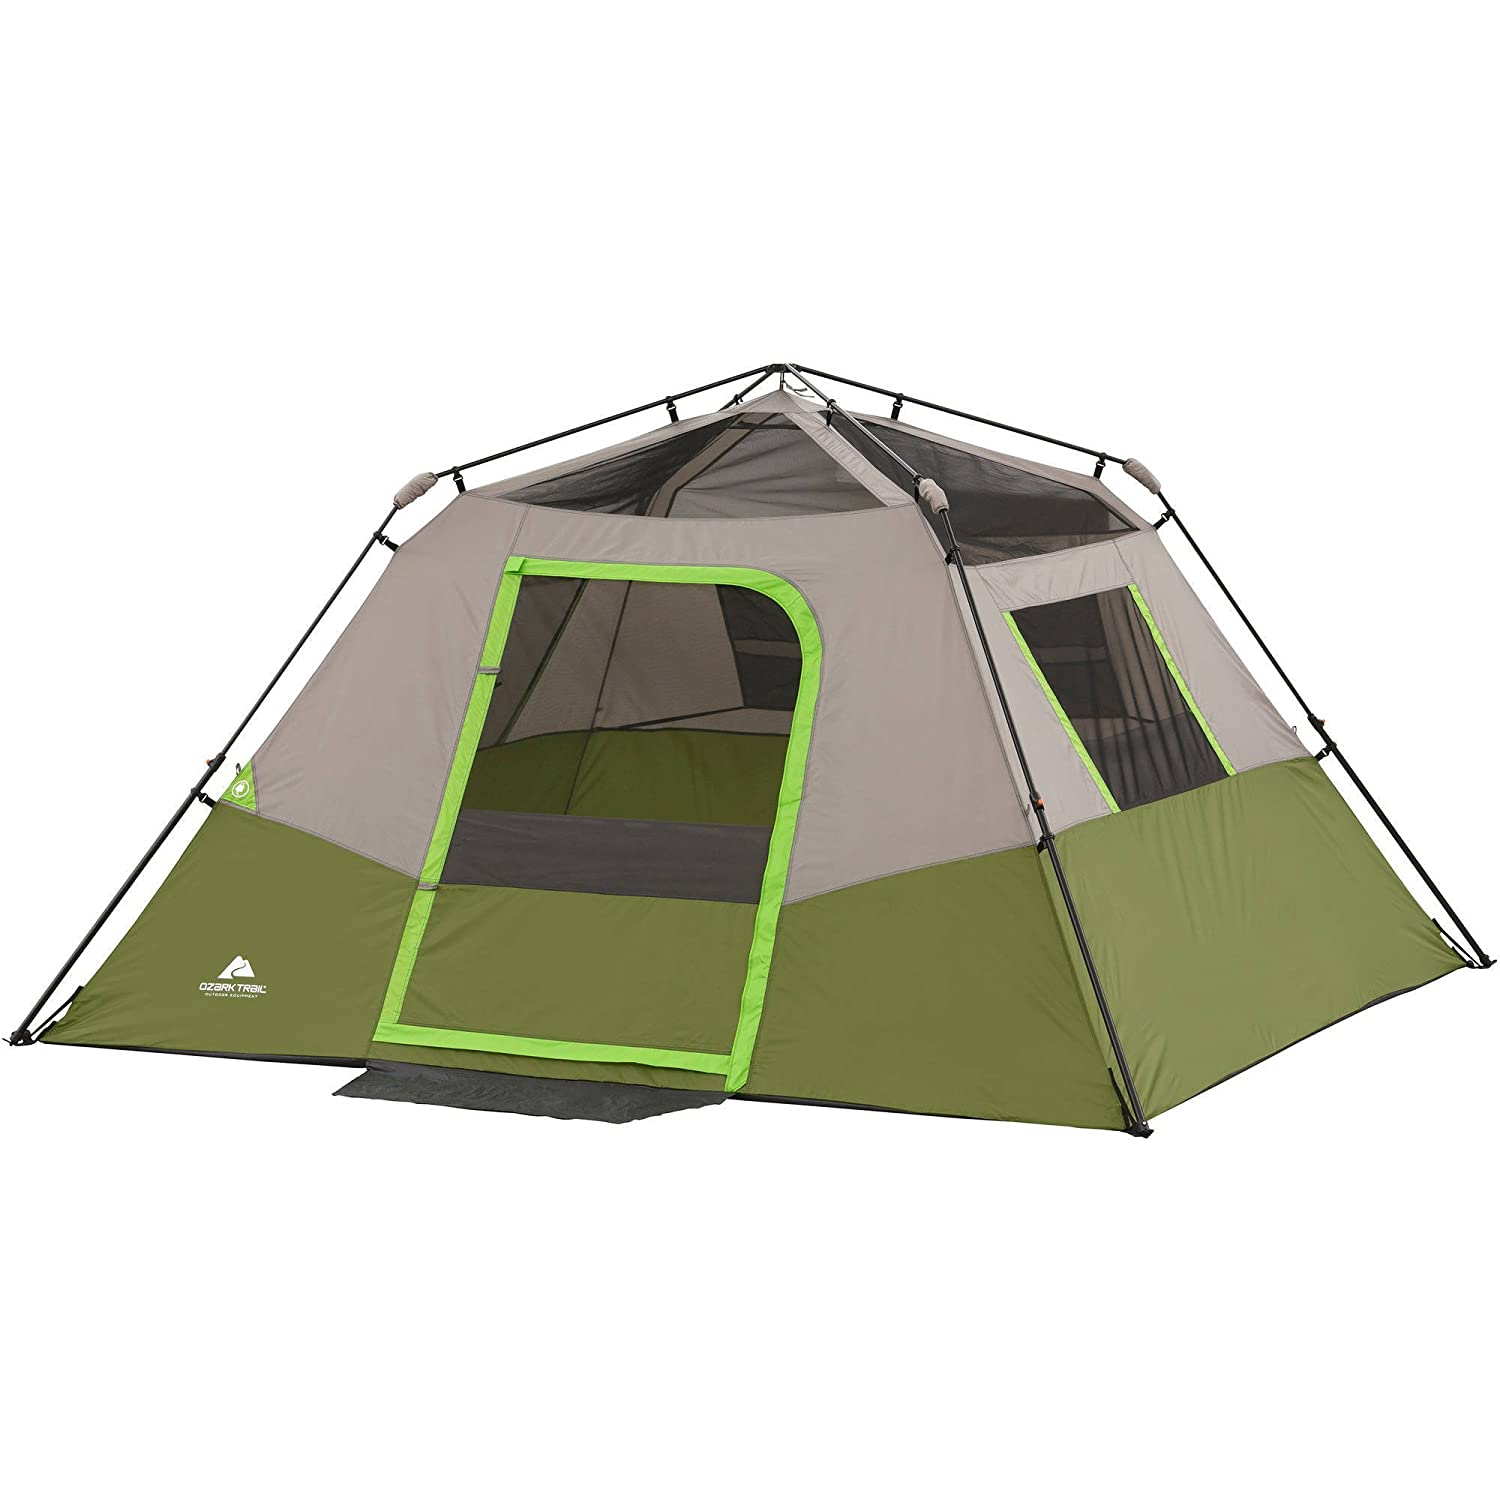 5. Ozark Trail 6 Person Instant Cabin Tent  sc 1 st  Outdoorzer.com : coleman sundome tent 5 person - memphite.com